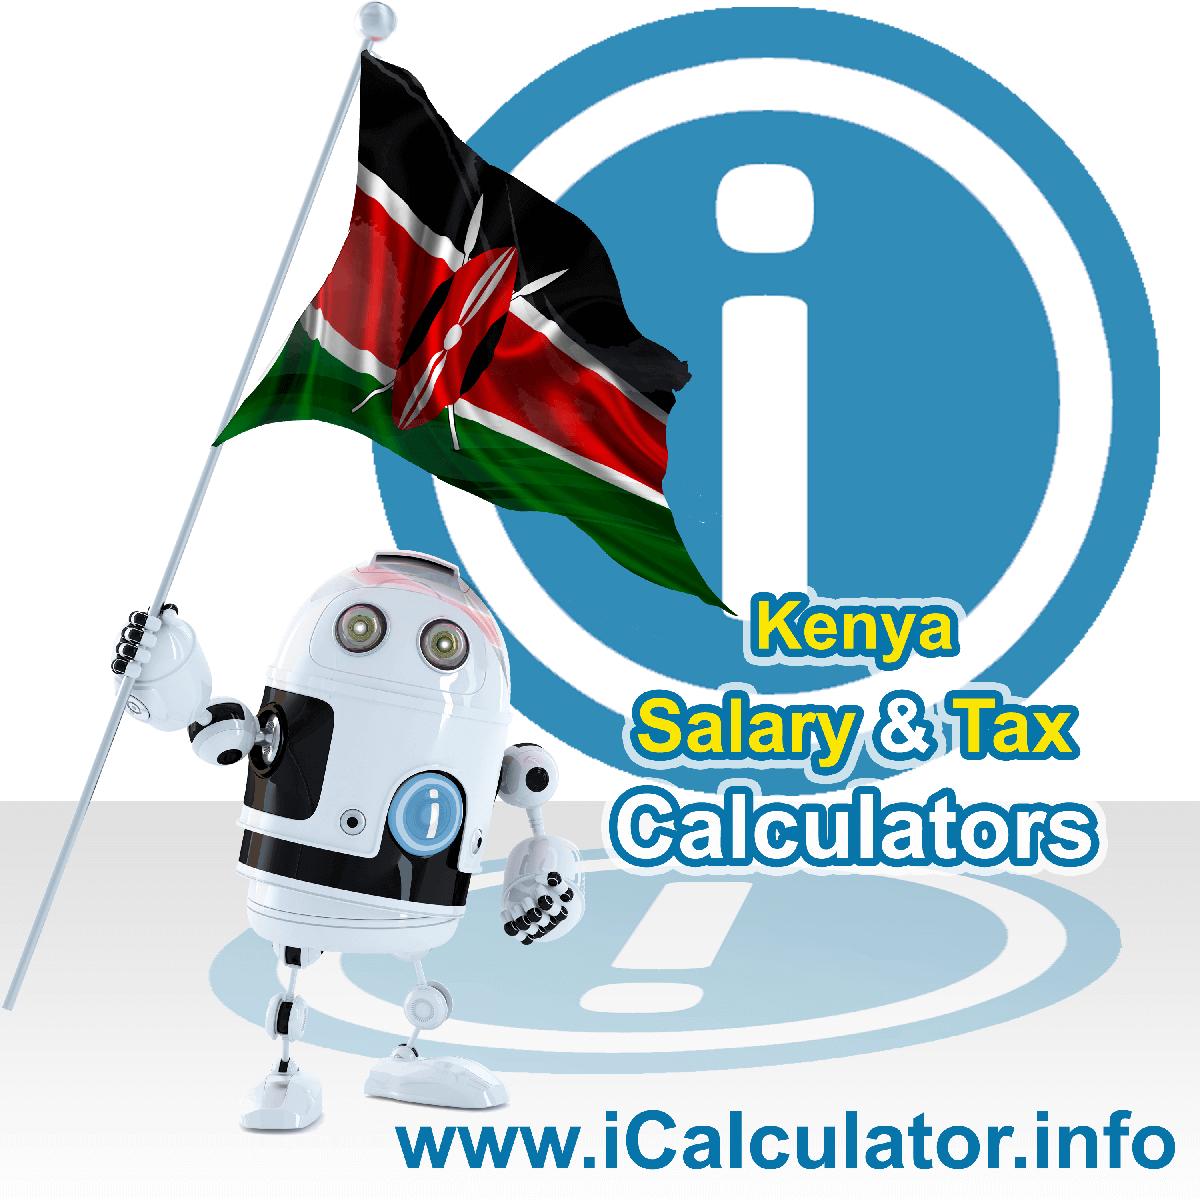 Kenya Tax Calculator. This image shows the Kenya flag and information relating to the tax formula for the Kenya Salary Calculator